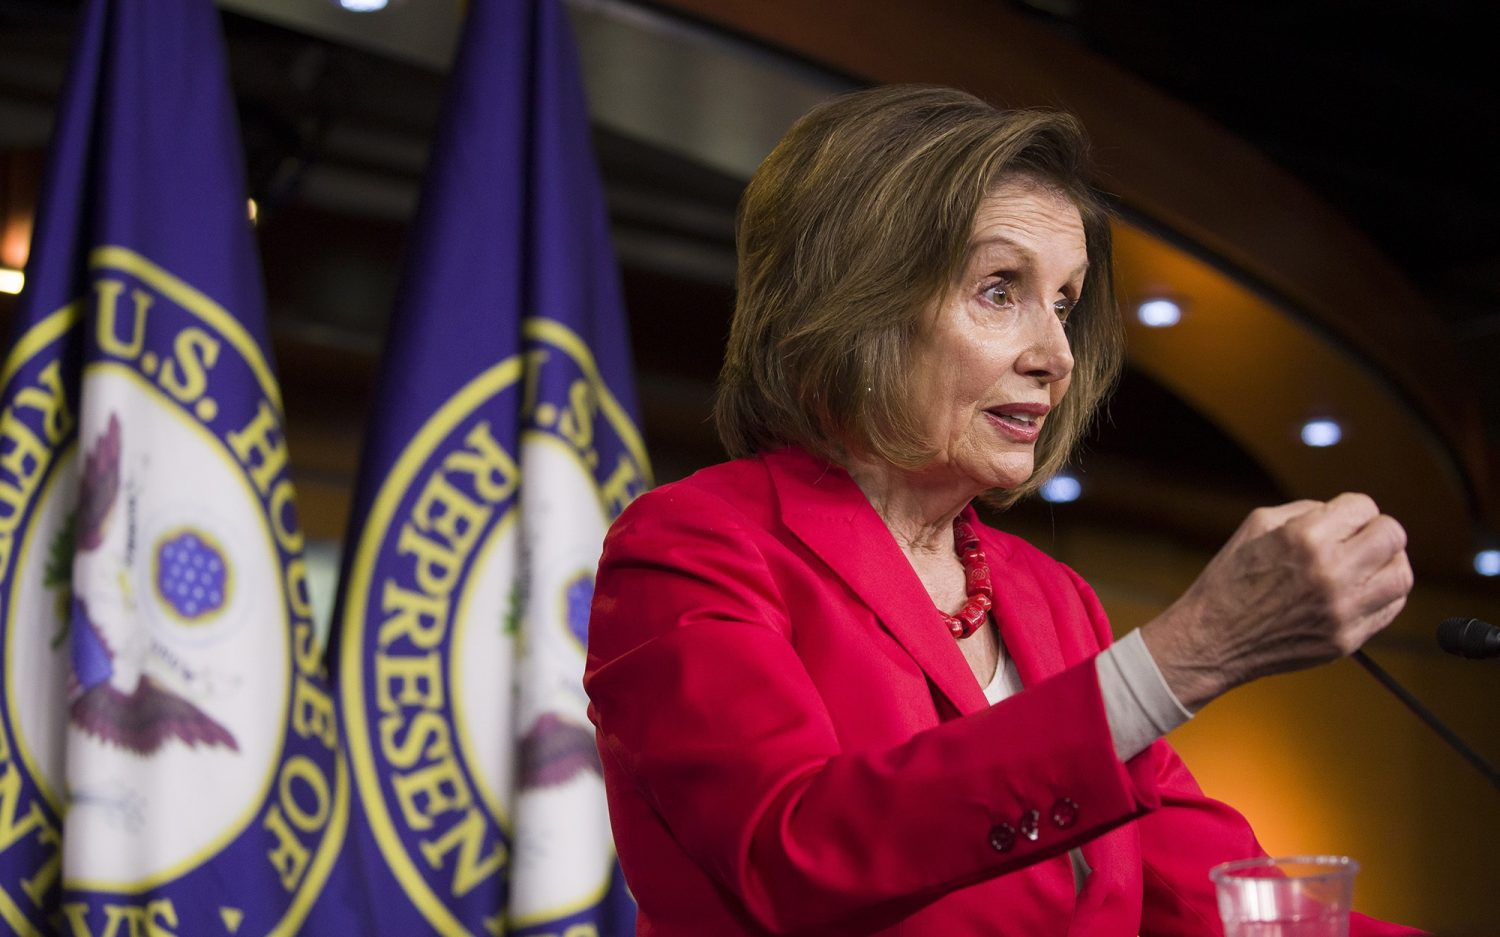 House compromises, passes border funding